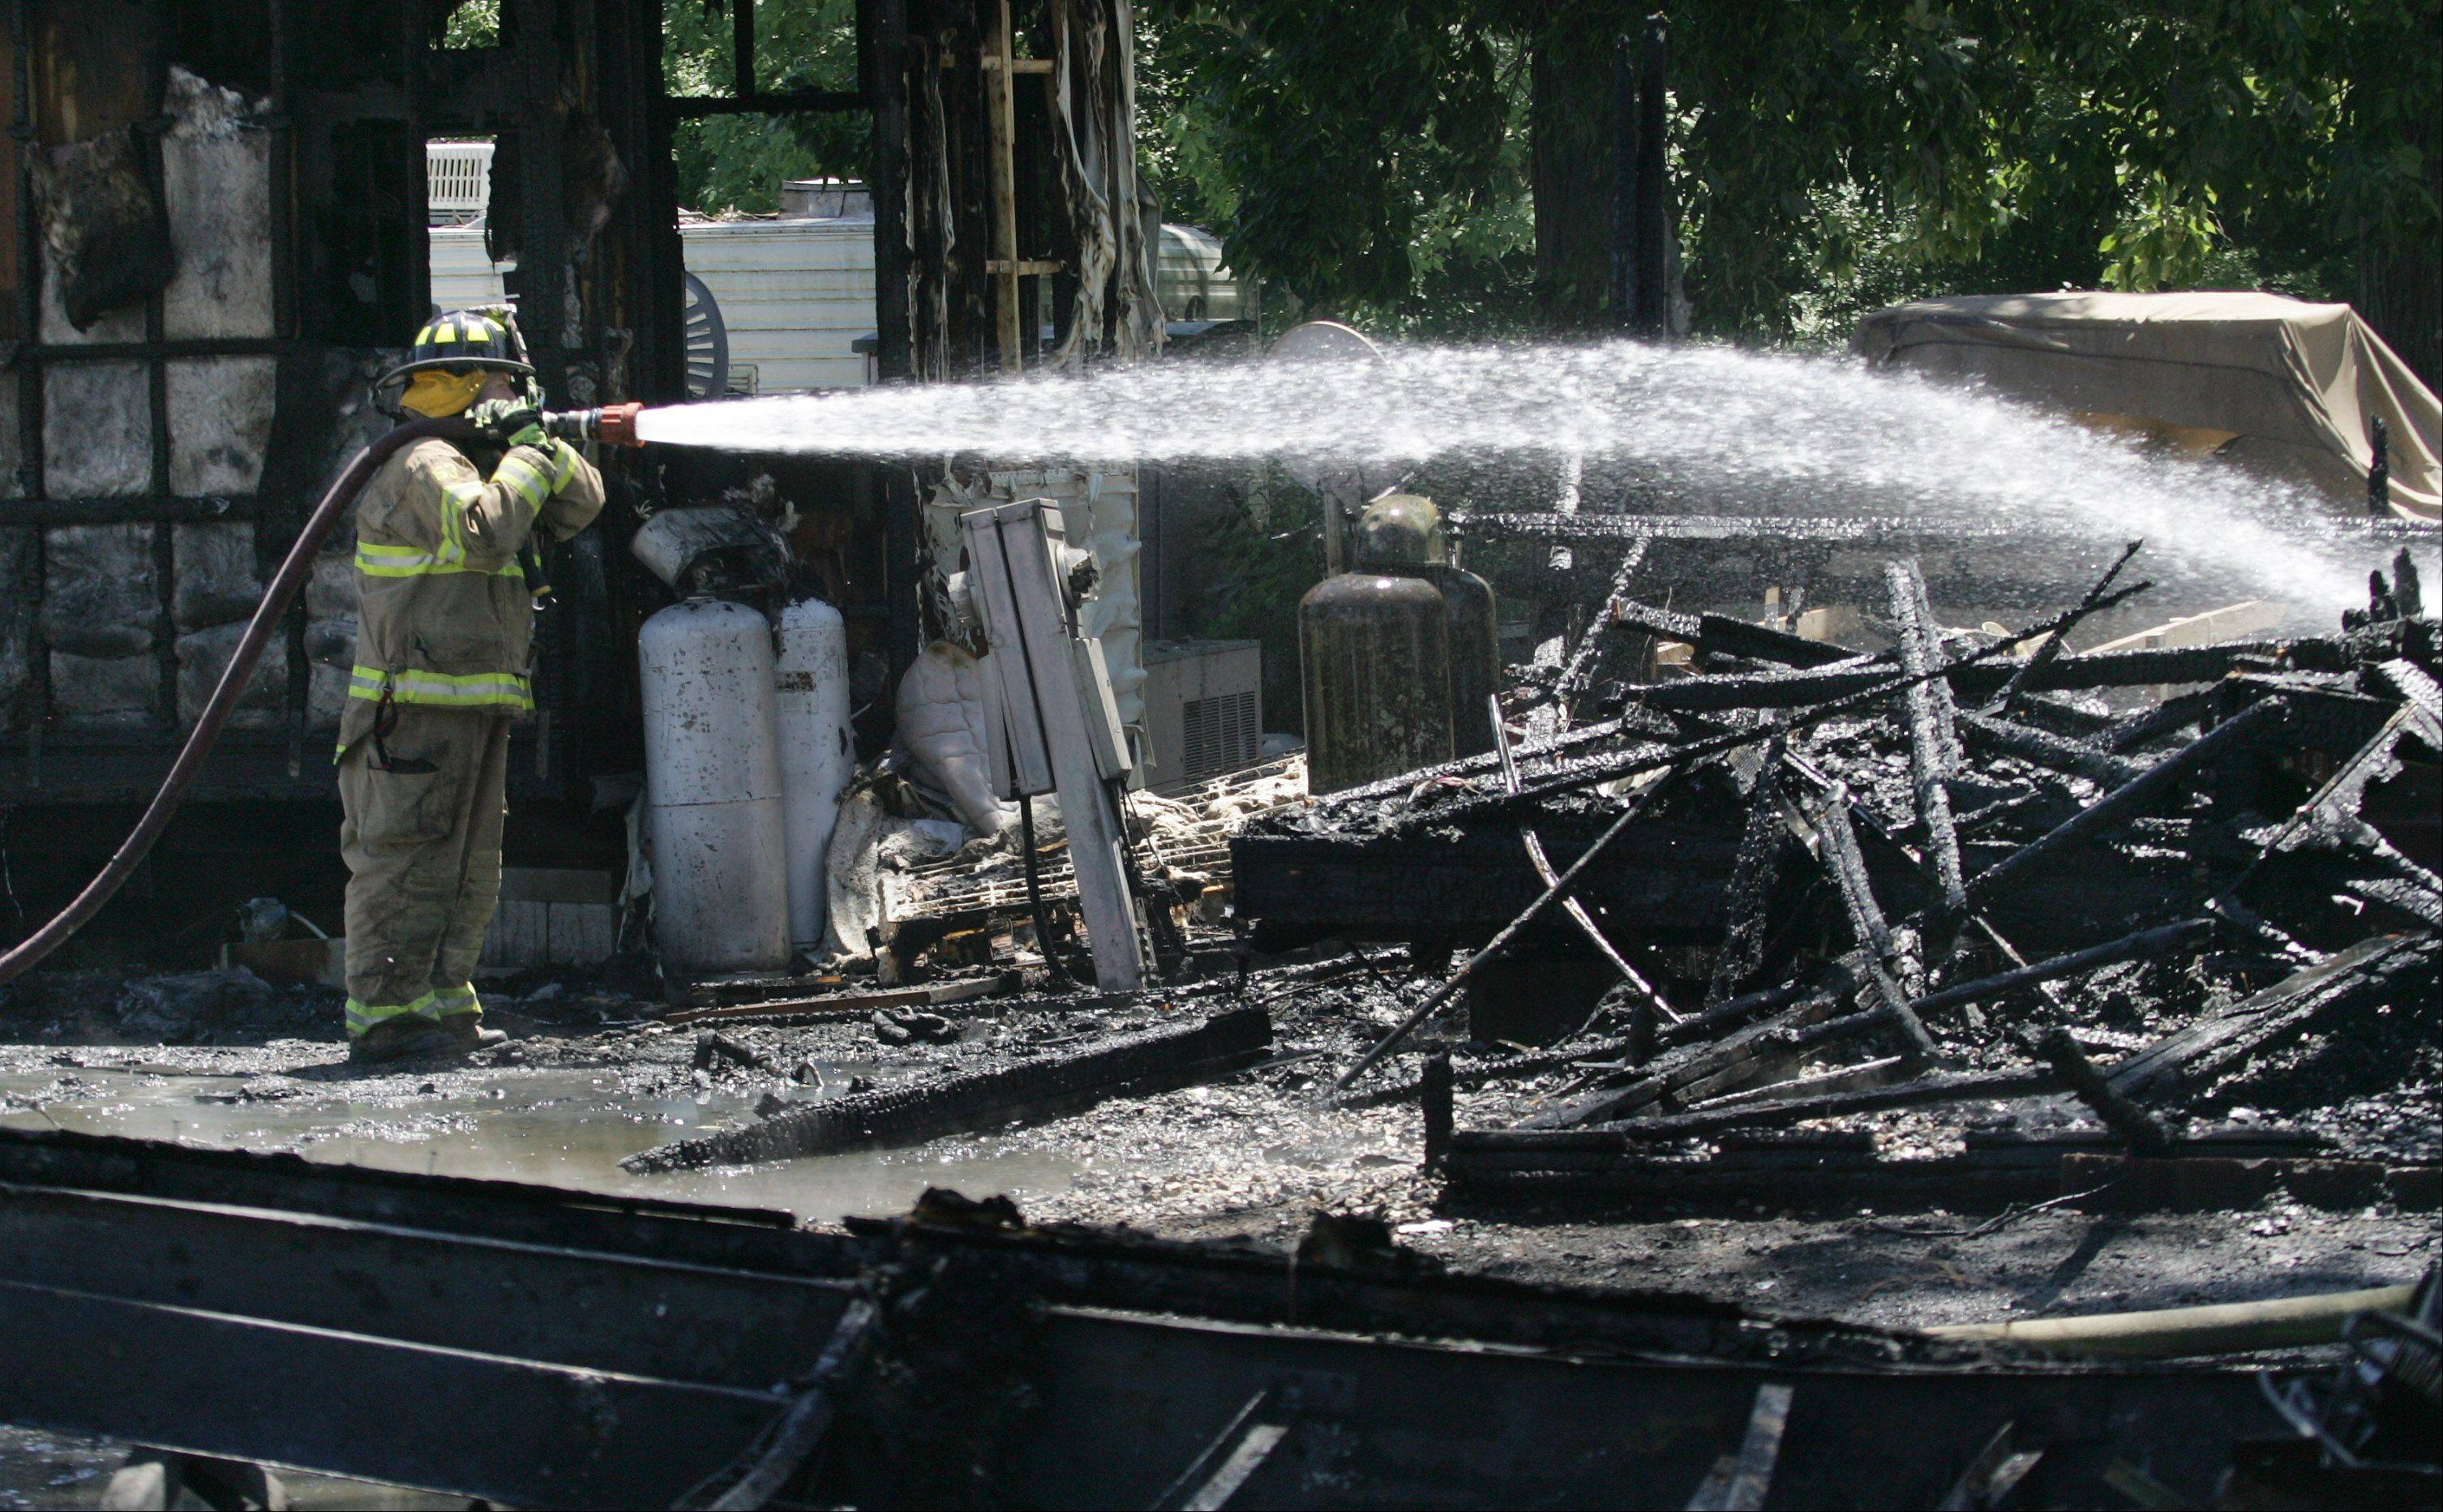 An Antioch firefighter sprays waters on the remains of one mobile home as he joined other Lake County firefighters Tuesday battling a fire involving multiple mobile homes near Antioch. Fire departments from Antioch, Lake Villa, Fox Lake and Gurnee assisted in the multiple alarm fire, which destroyed at least three homes.